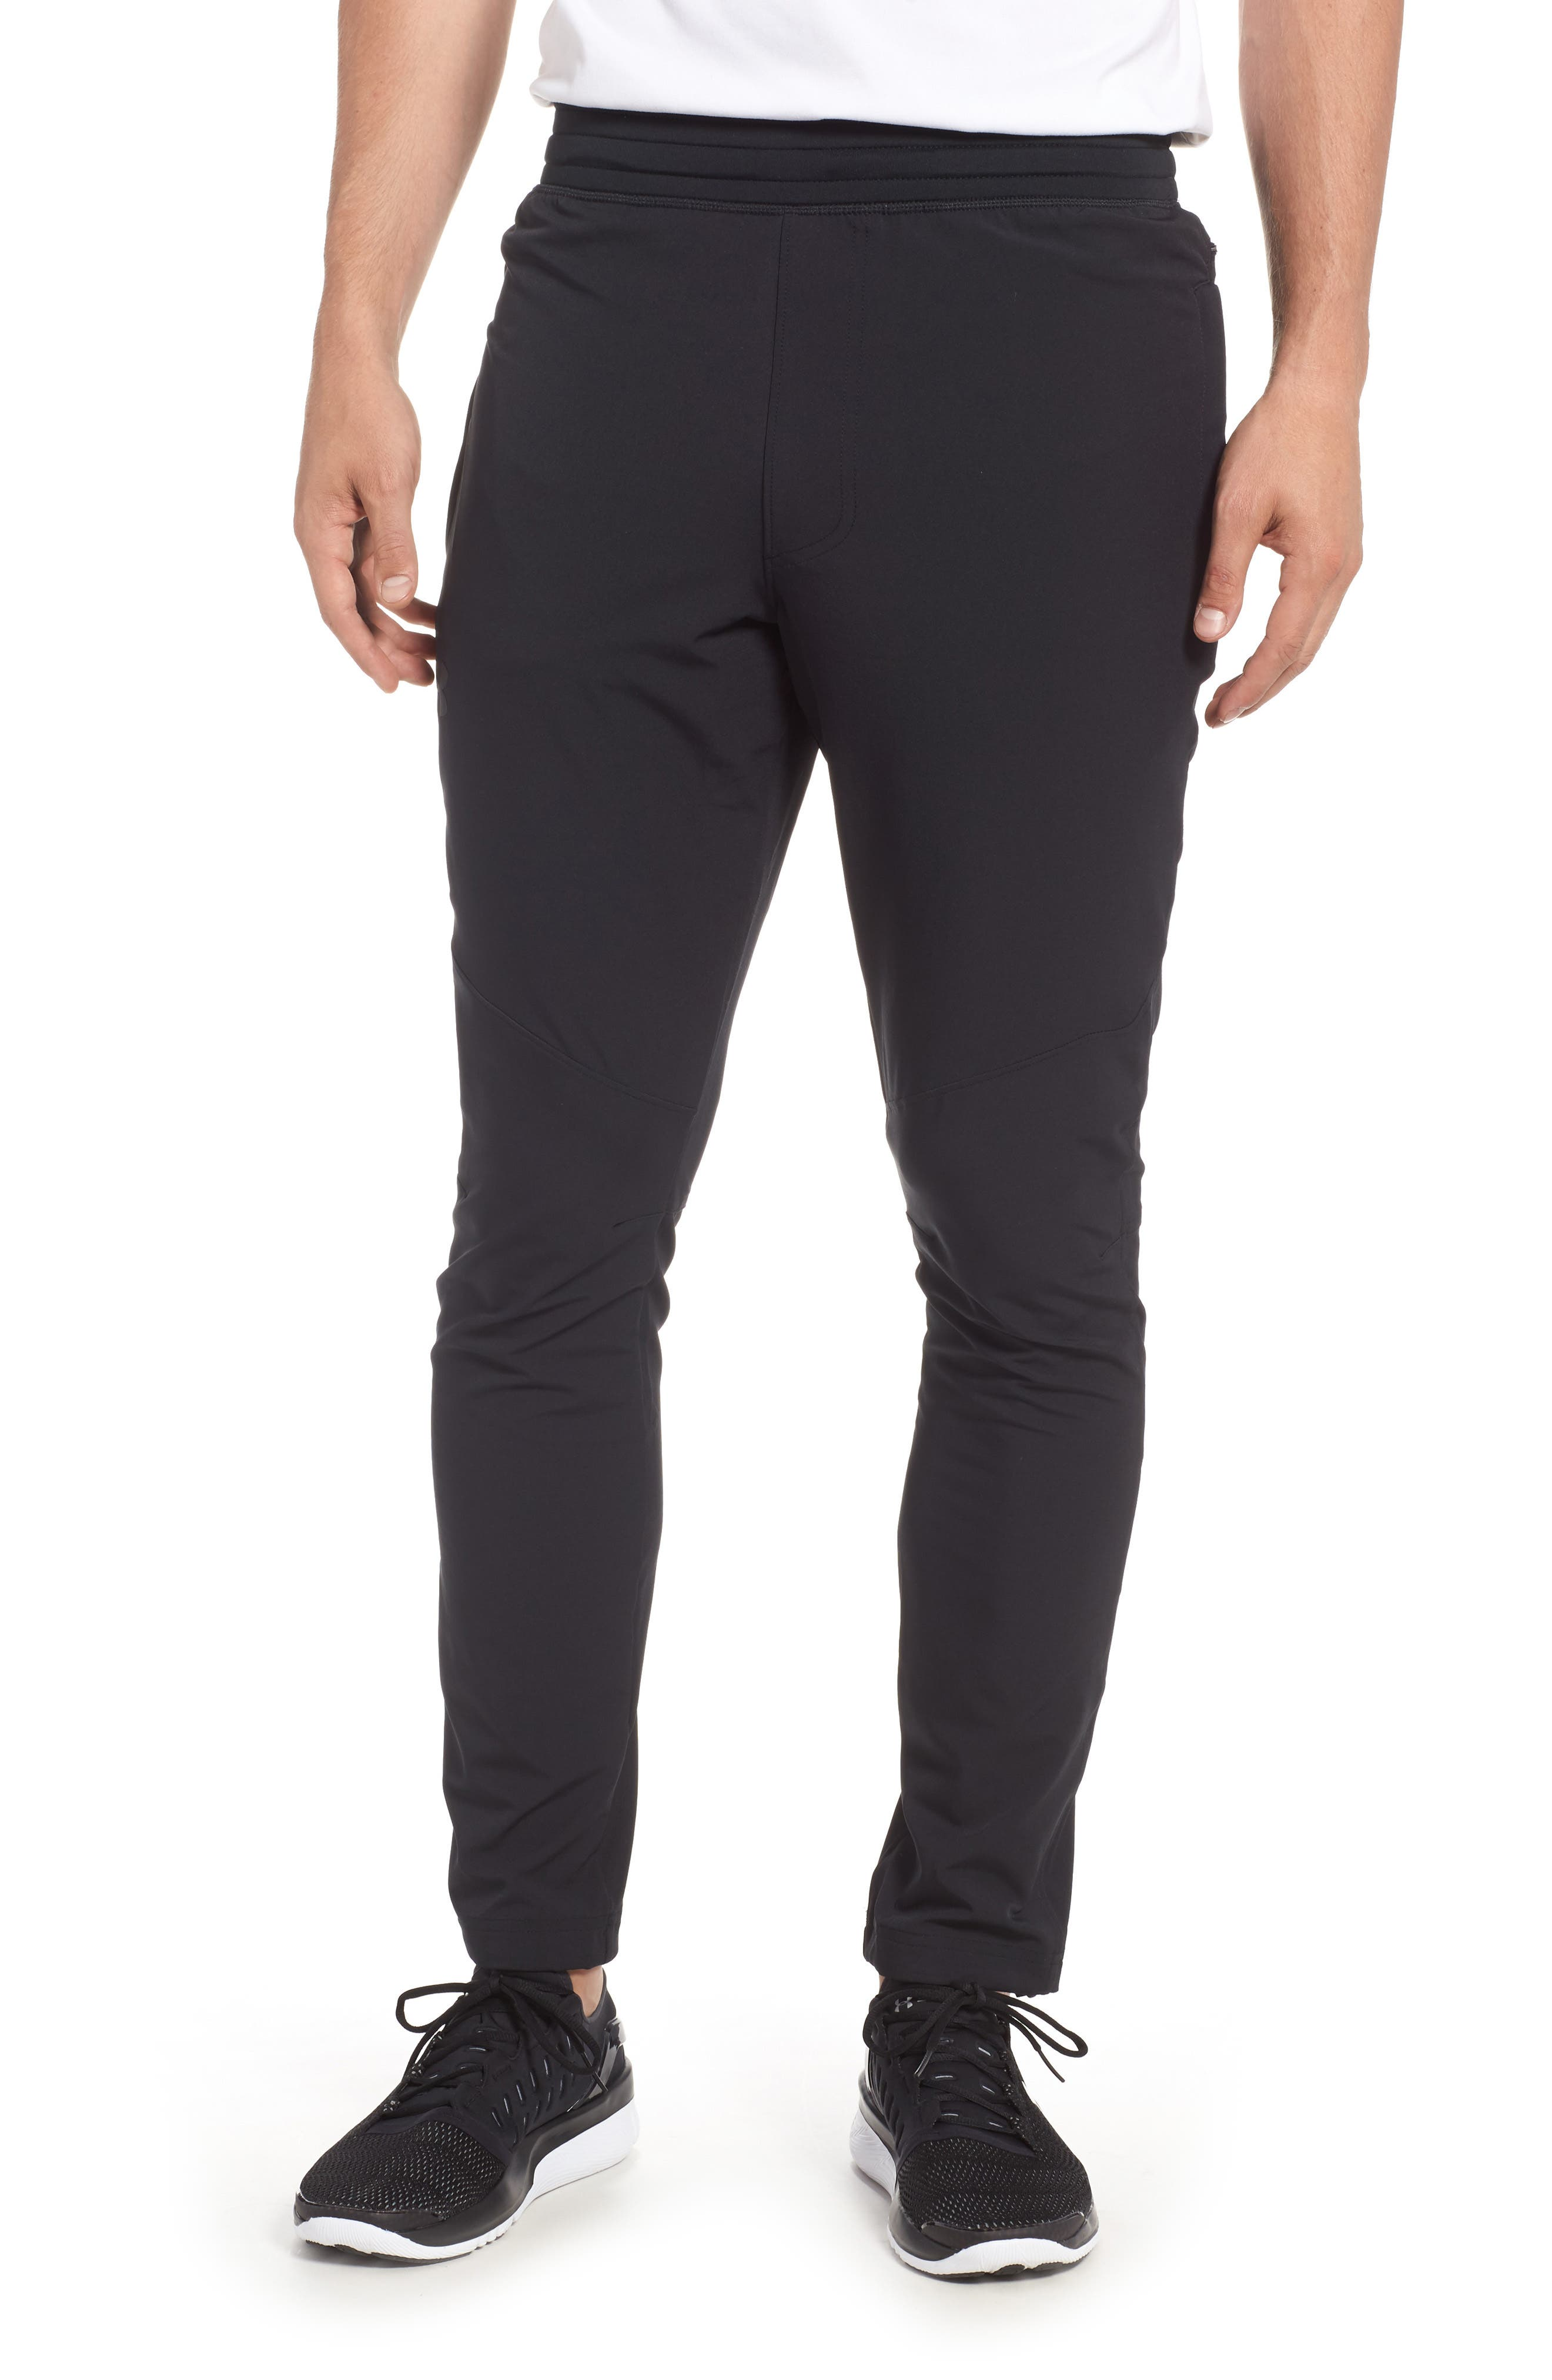 Fitted Woven Training Pants,                         Main,                         color, BLACK